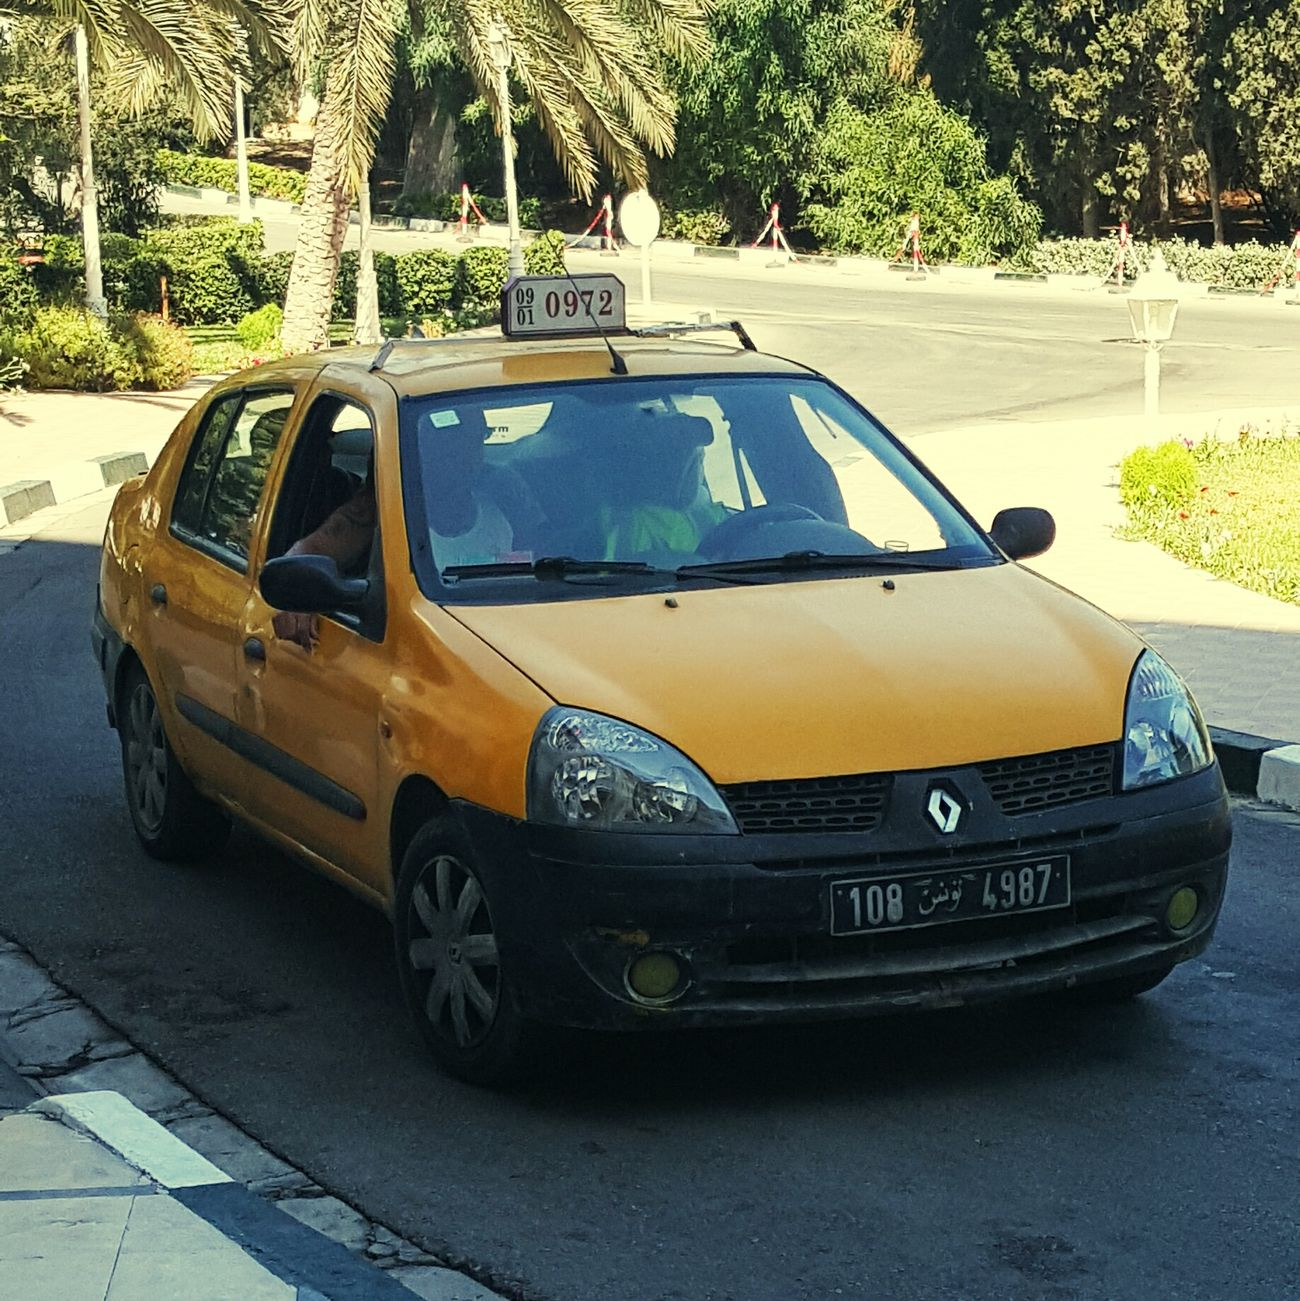 Does this Taxi look safe? Yellow Tunisia